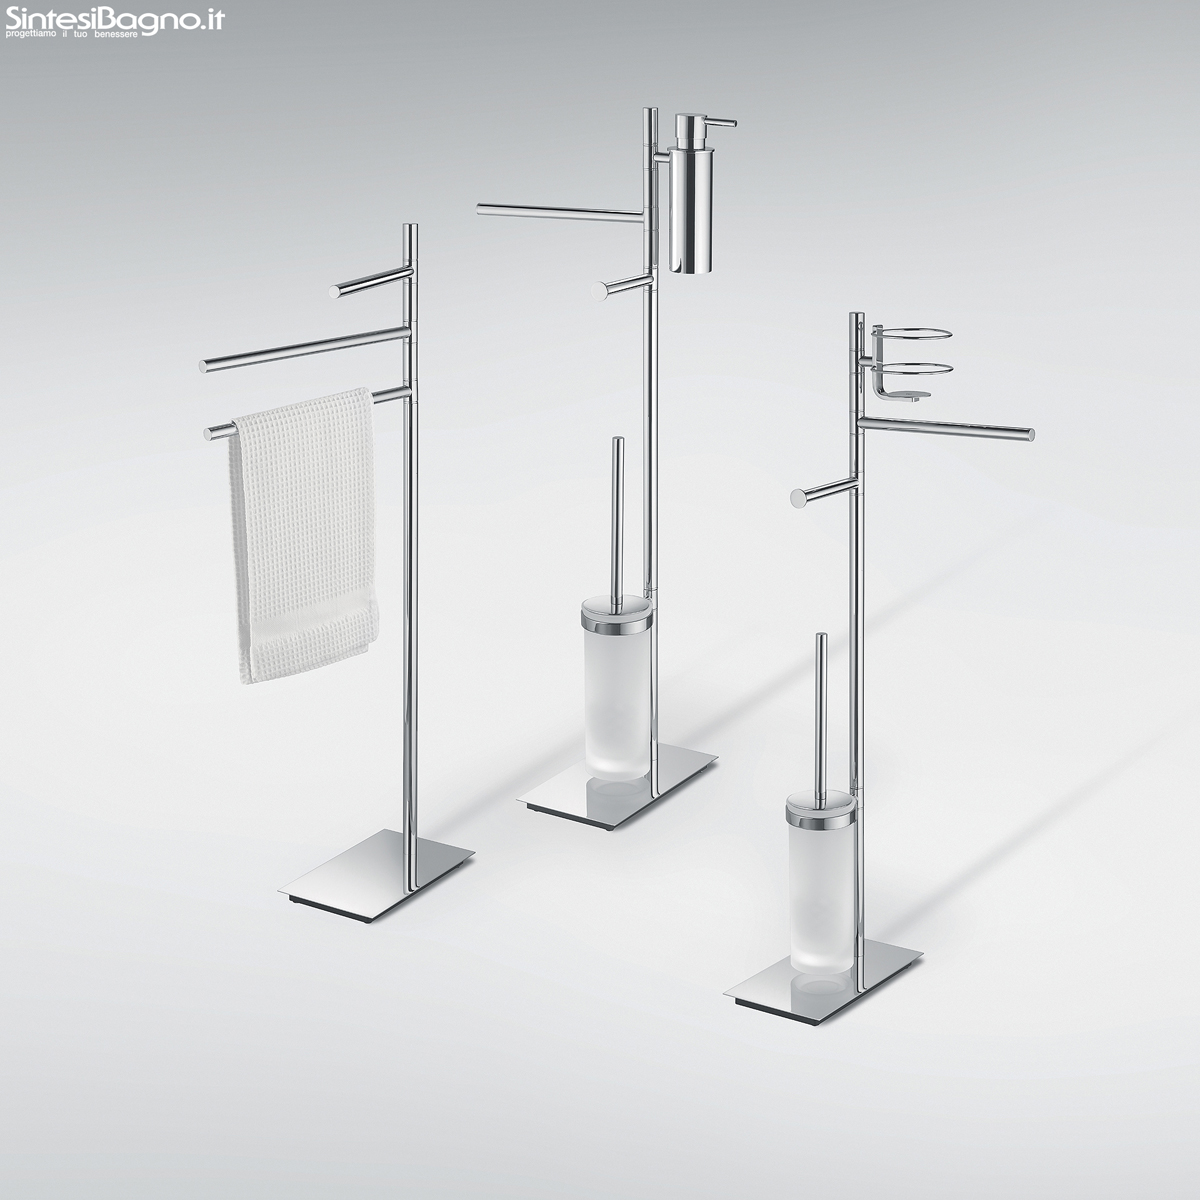 Piantane e colonne serie square di colombo design for Accessori x il bagno